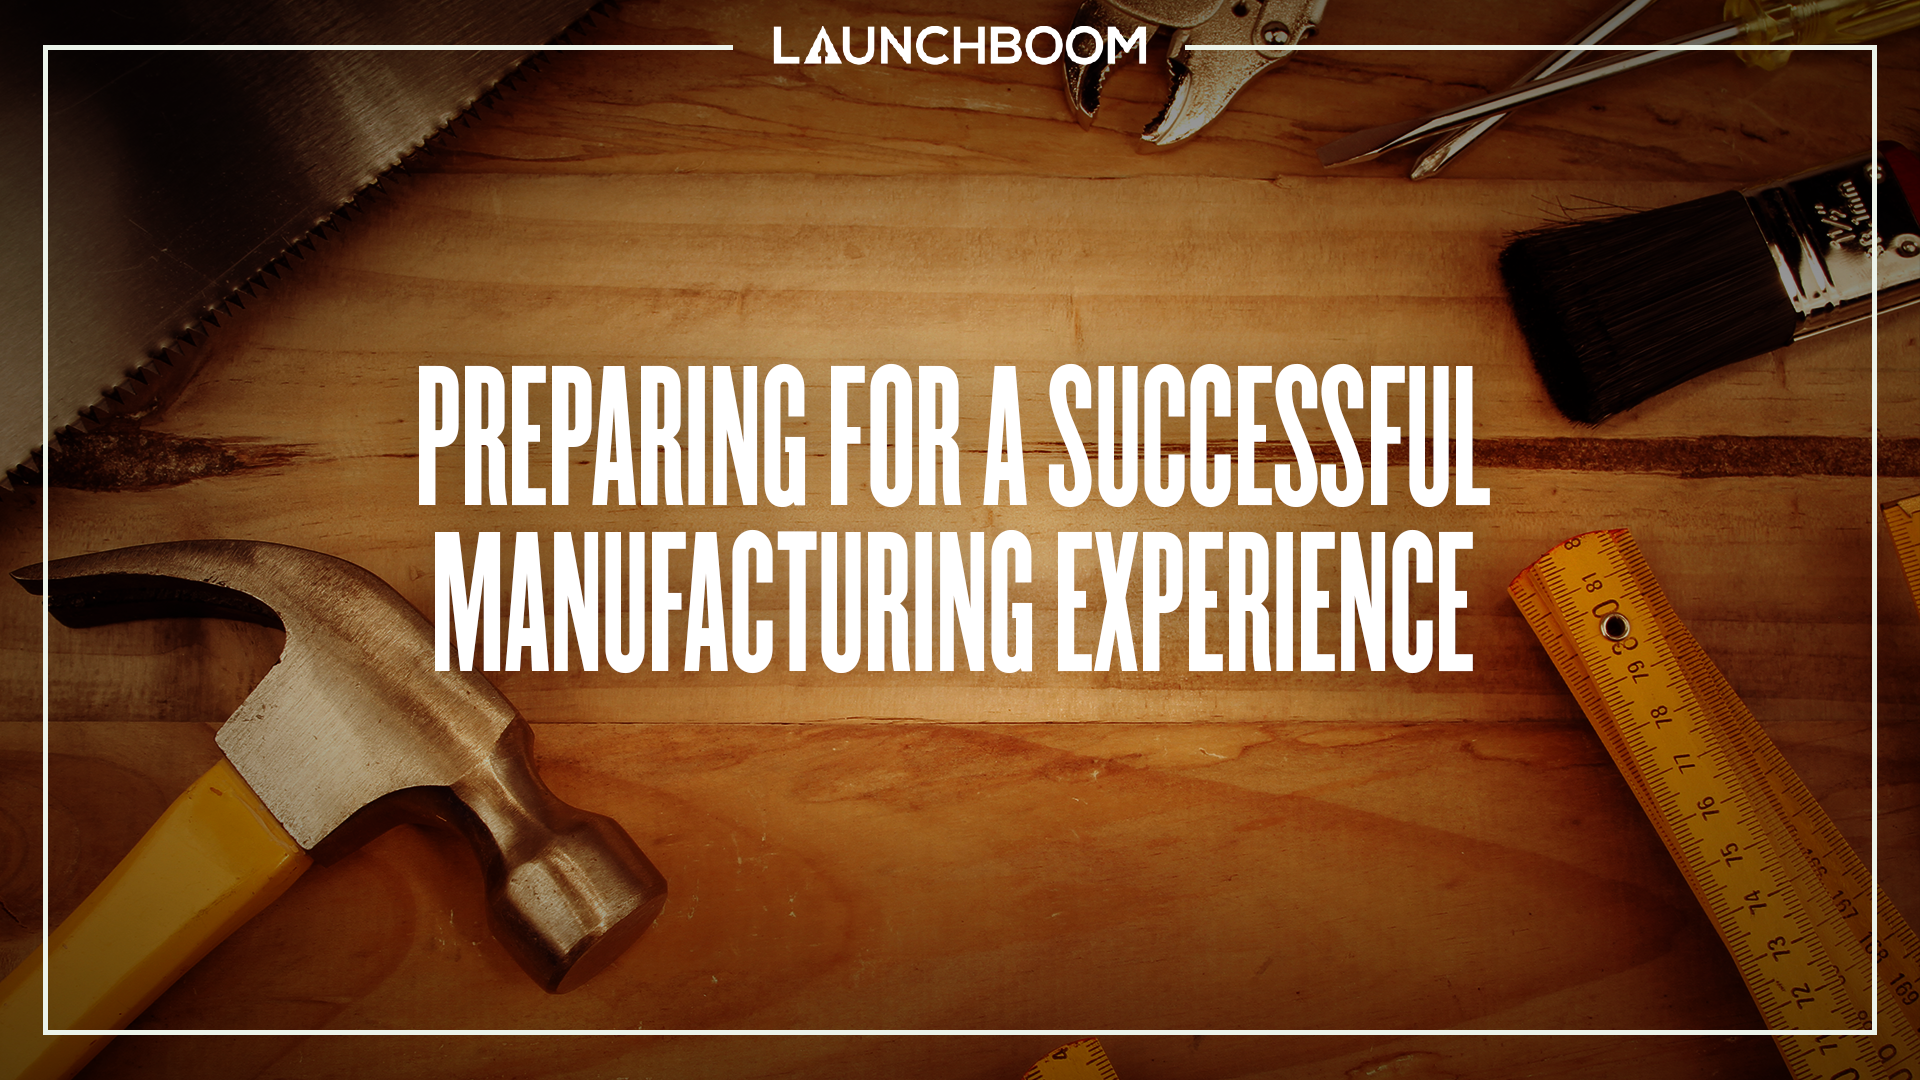 Prepare for a successful crowdfunding manufacturing experience